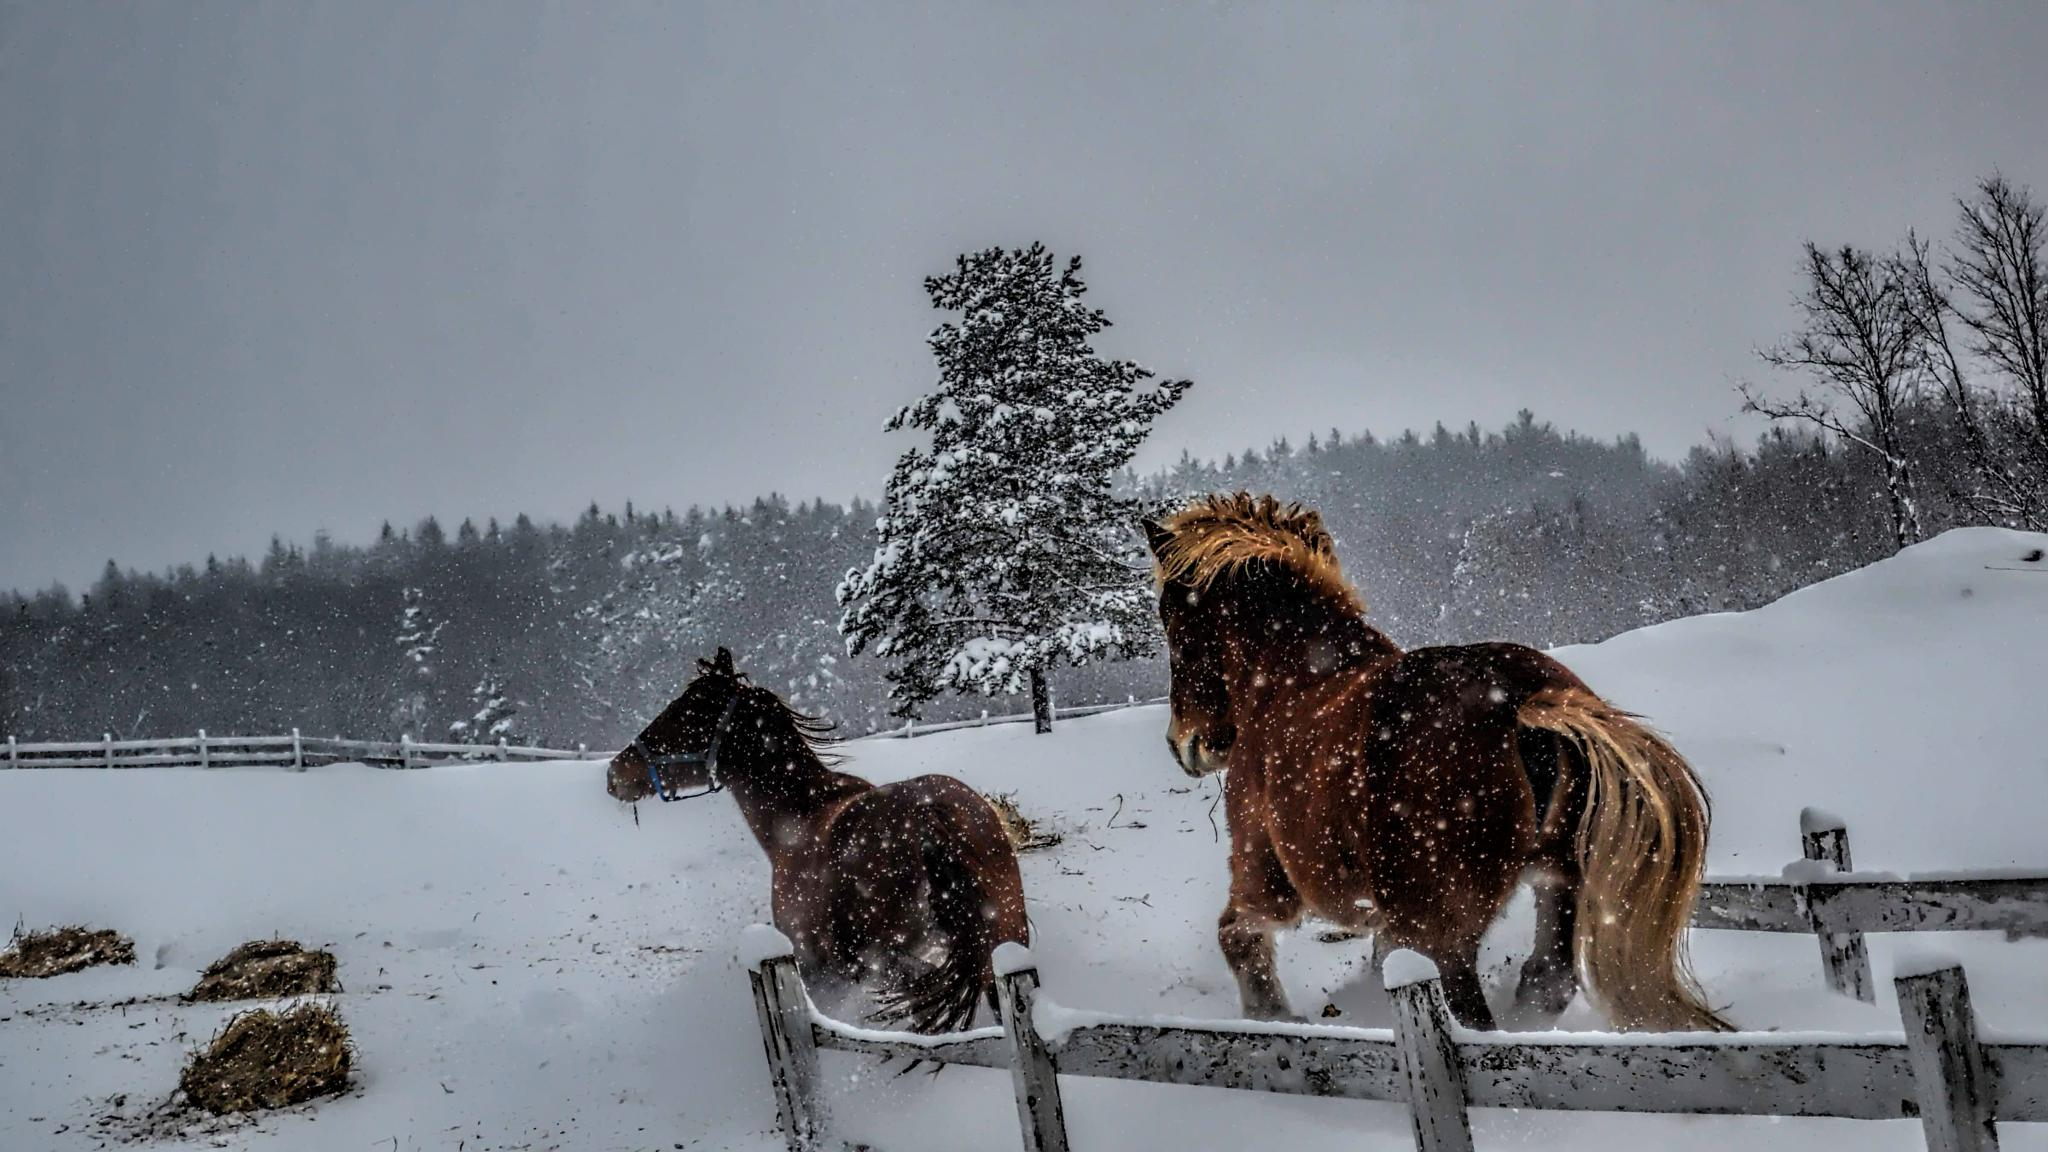 Full of it in the snow. by terrie.l.carter